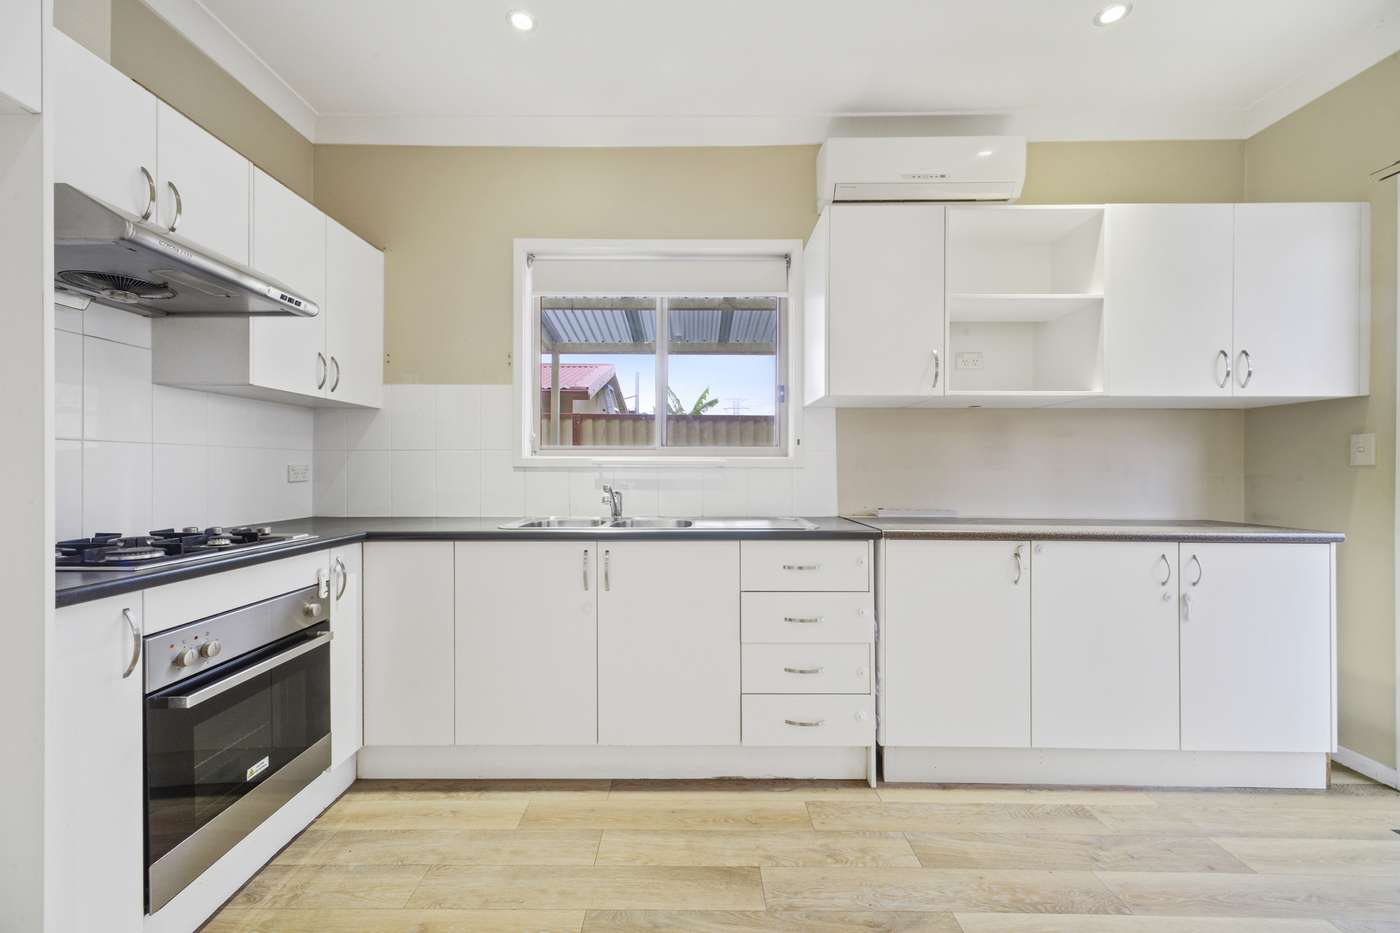 Main view of Homely unit listing, 1/19 Warsaw Street, North Strathfield, NSW 2137